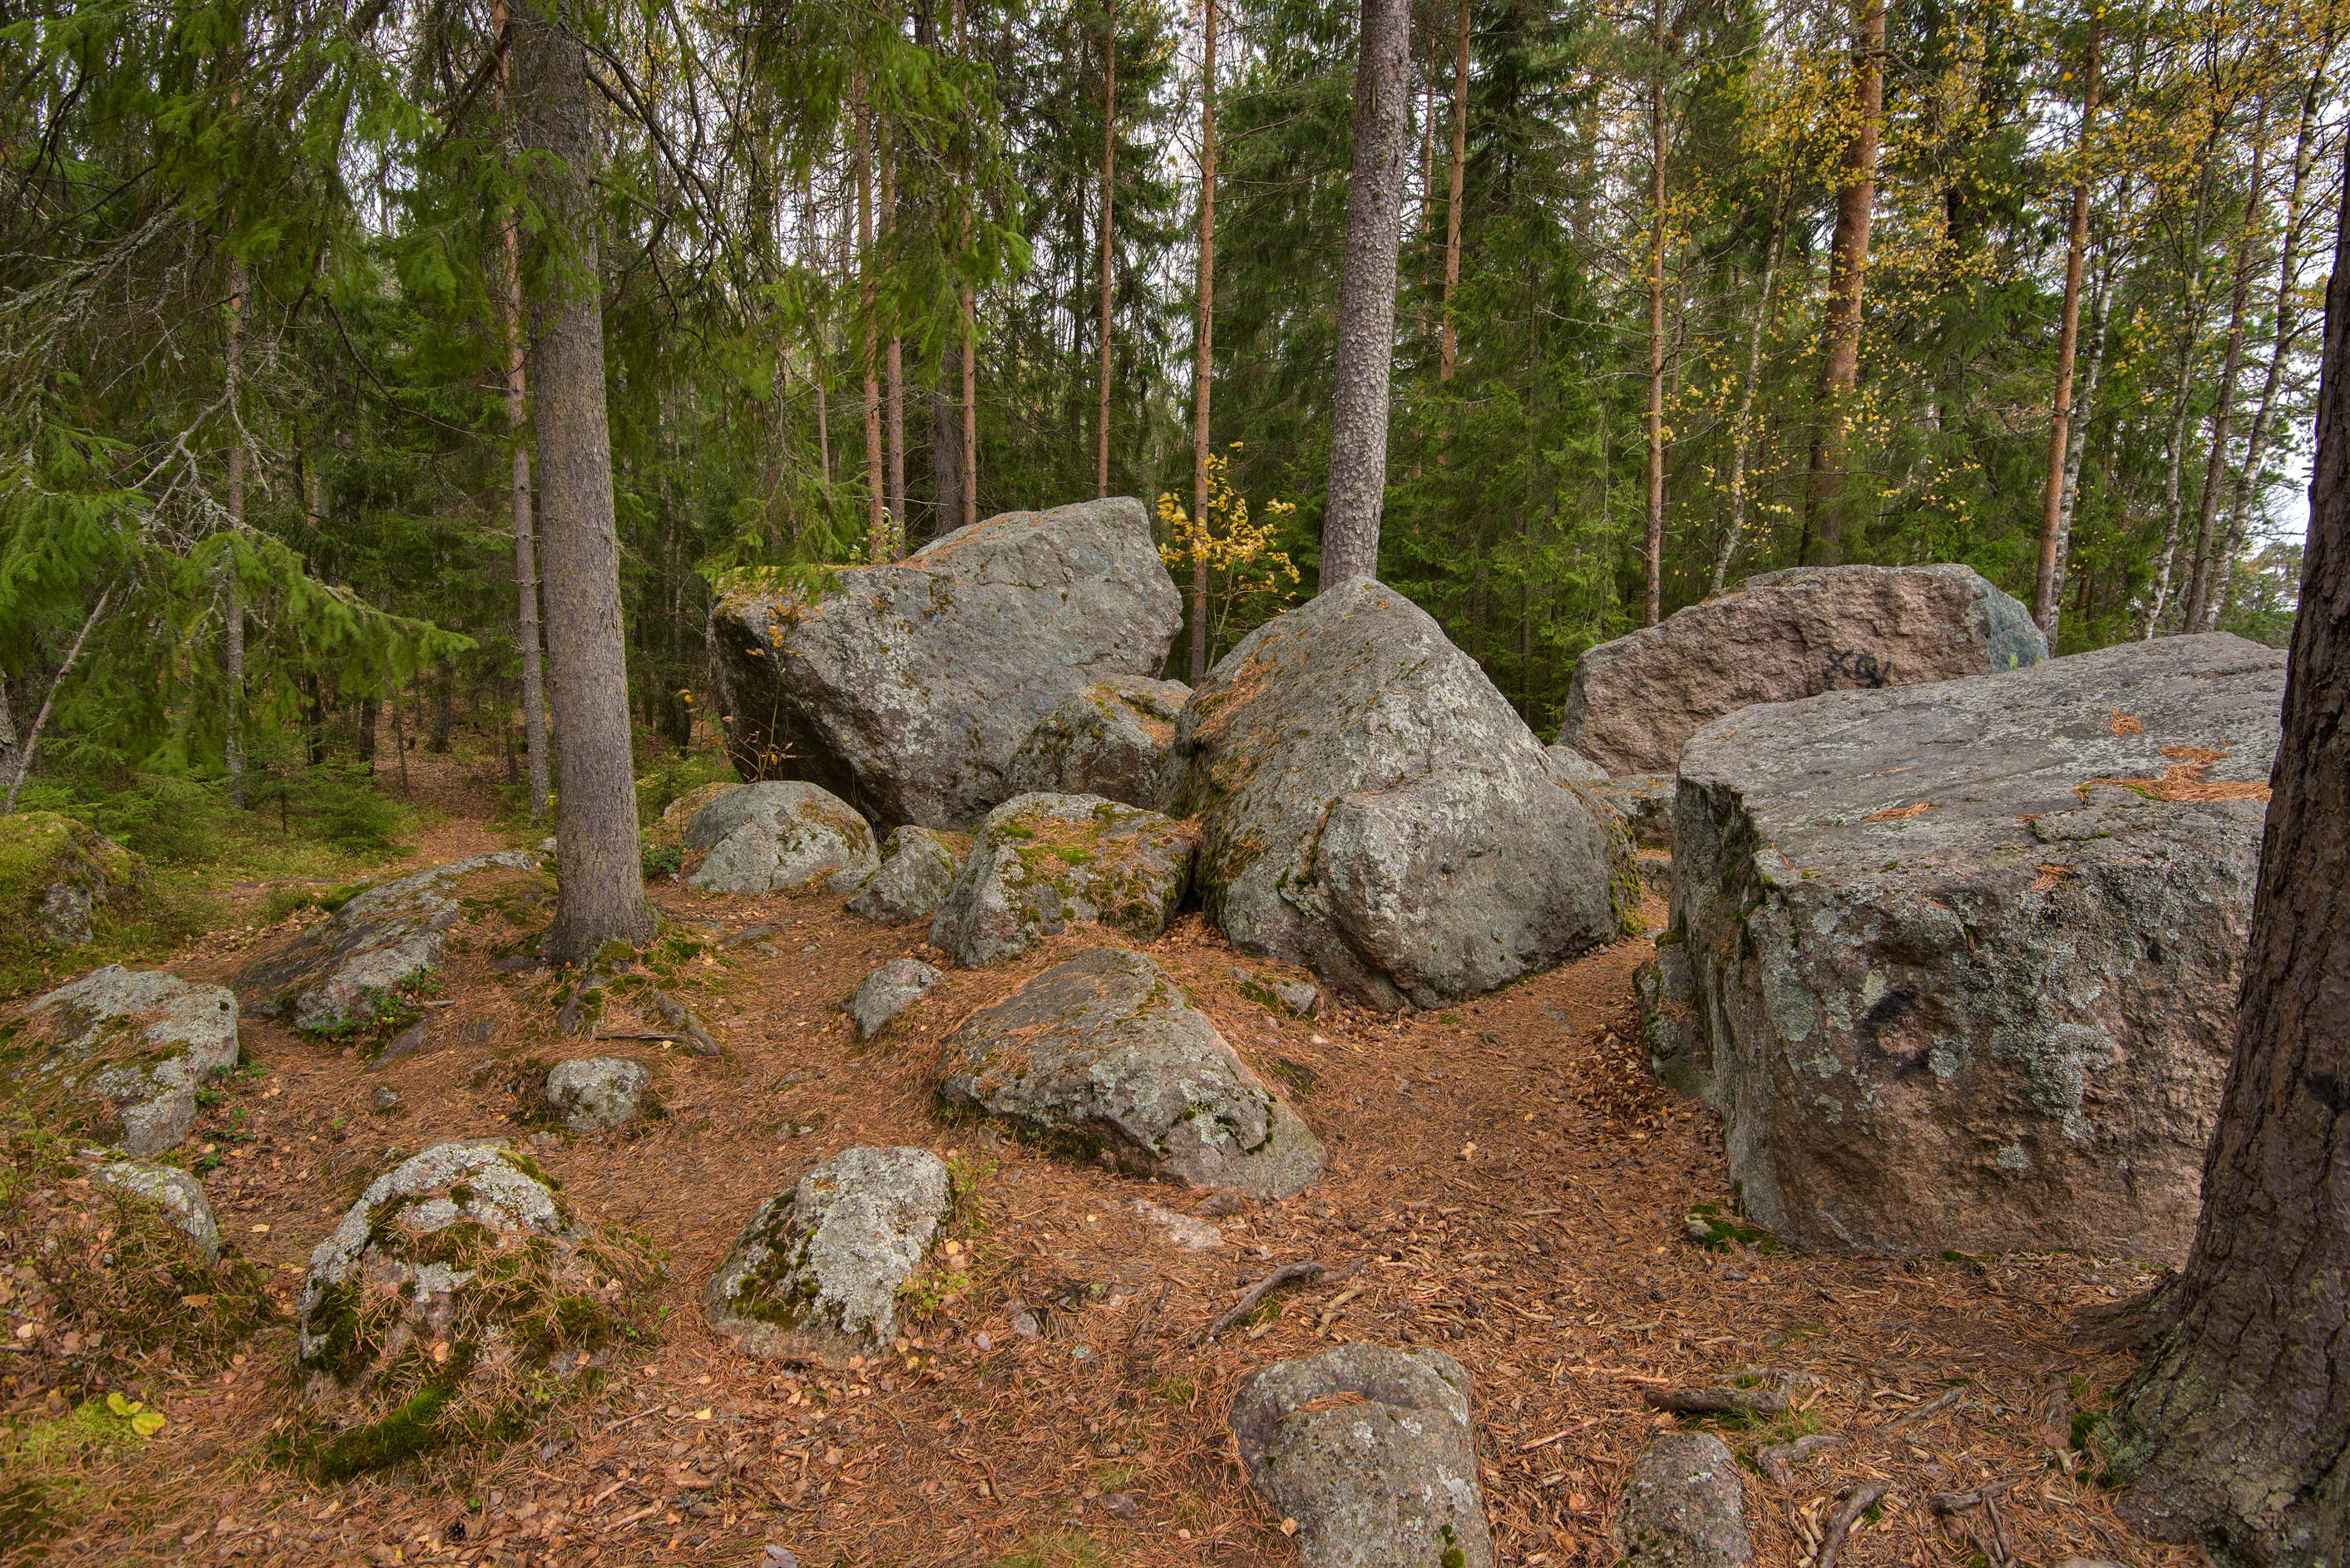 Large boulders near Monrepo (Mon Repos) Park. Vyborg, north from St.Petersburg, Russia